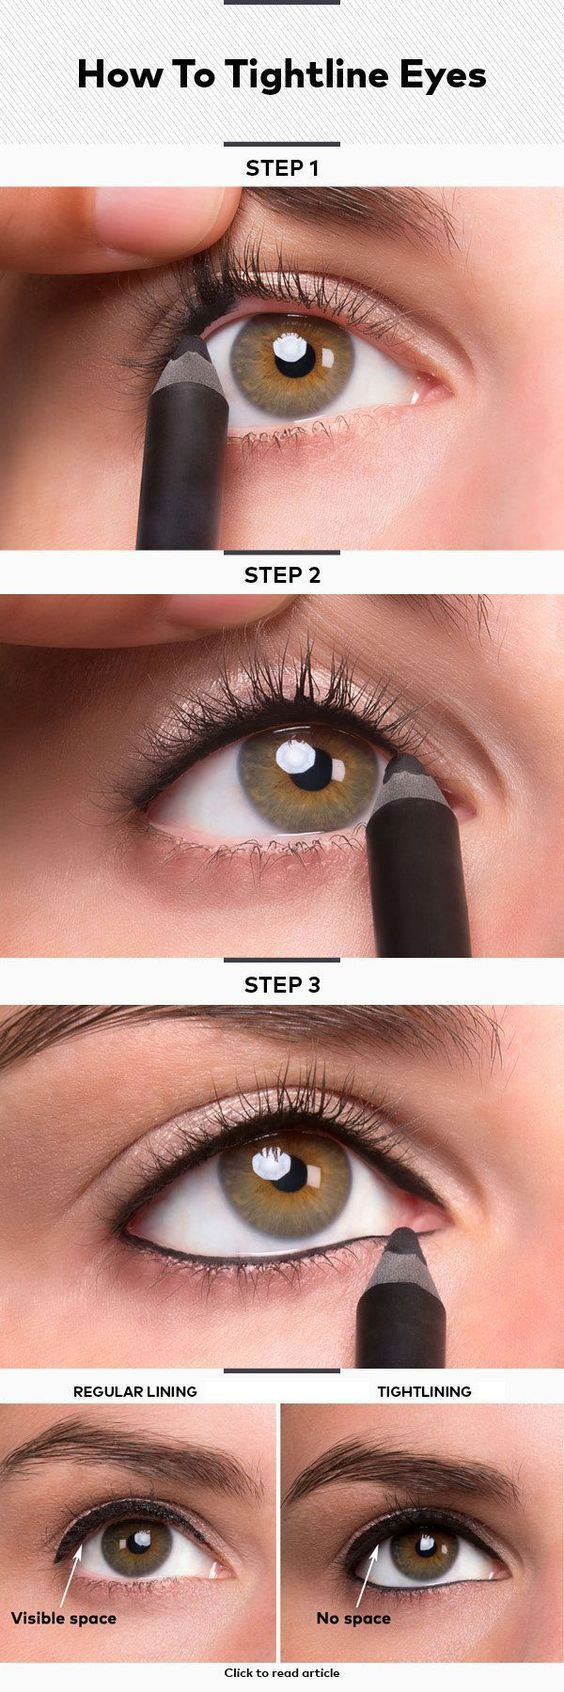 18 Makeup Tips For Girls Who Don't Know How To Use Eyeliner - Gurl.com